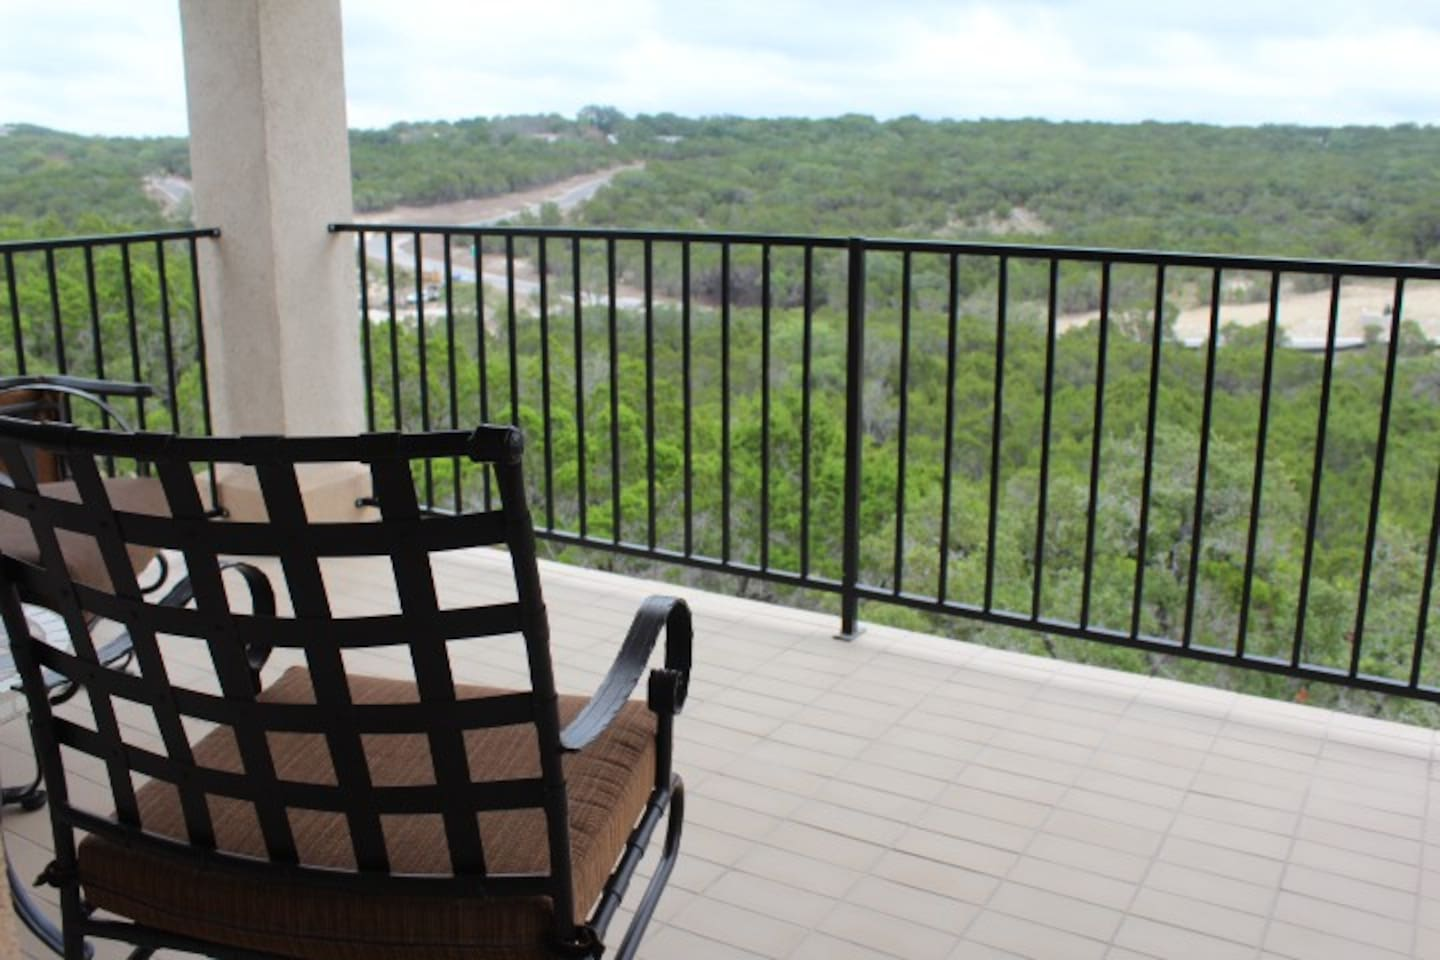 Relax in the balcony overlooking a nature preserve